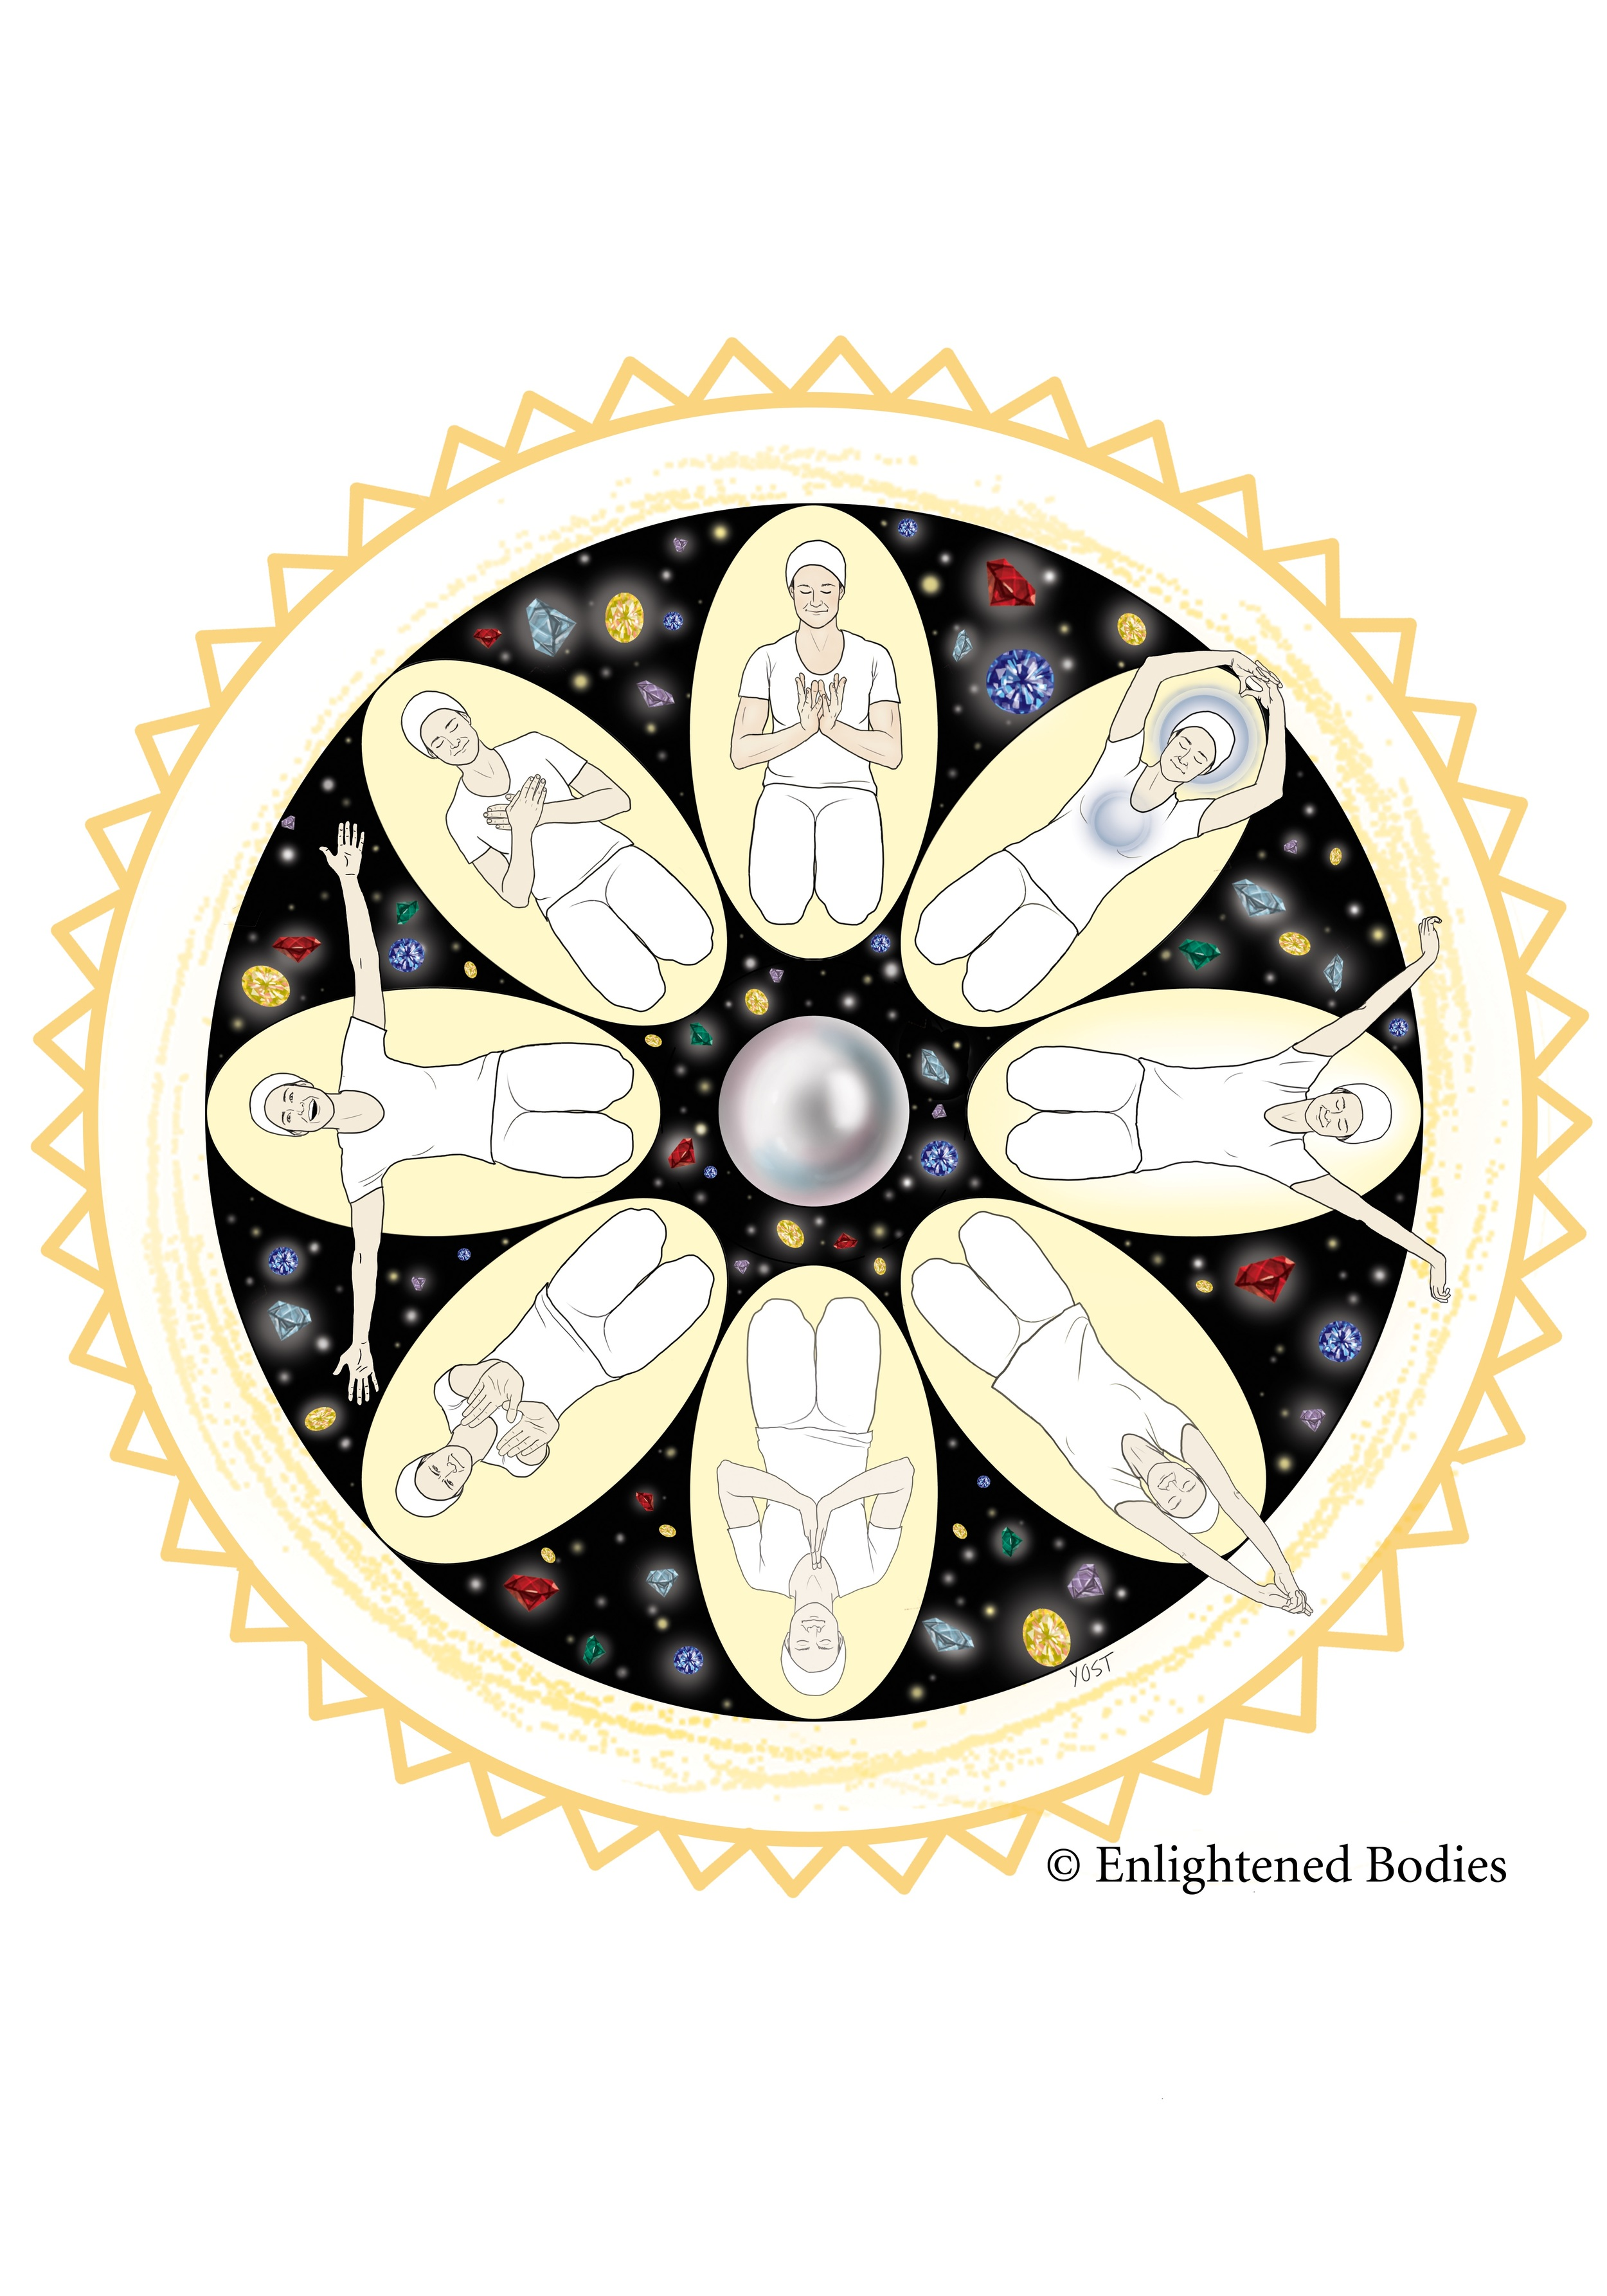 "Our vision for the 10 Light Bodies Mandala is to help yoga teachers and teacher trainers ""see"" the connection of the Light Bodies as a teaching tool. The way that the consciousness transforms through yoga and how the jewels of meditation come to you over time. The pearl in the center represents the ""Soul Body"" and the outer edge of Gold is the ""Radiant Body"". The other Bodies are left open to interpretation through the mudras and movement cycling through the mandala. Enjoy!"